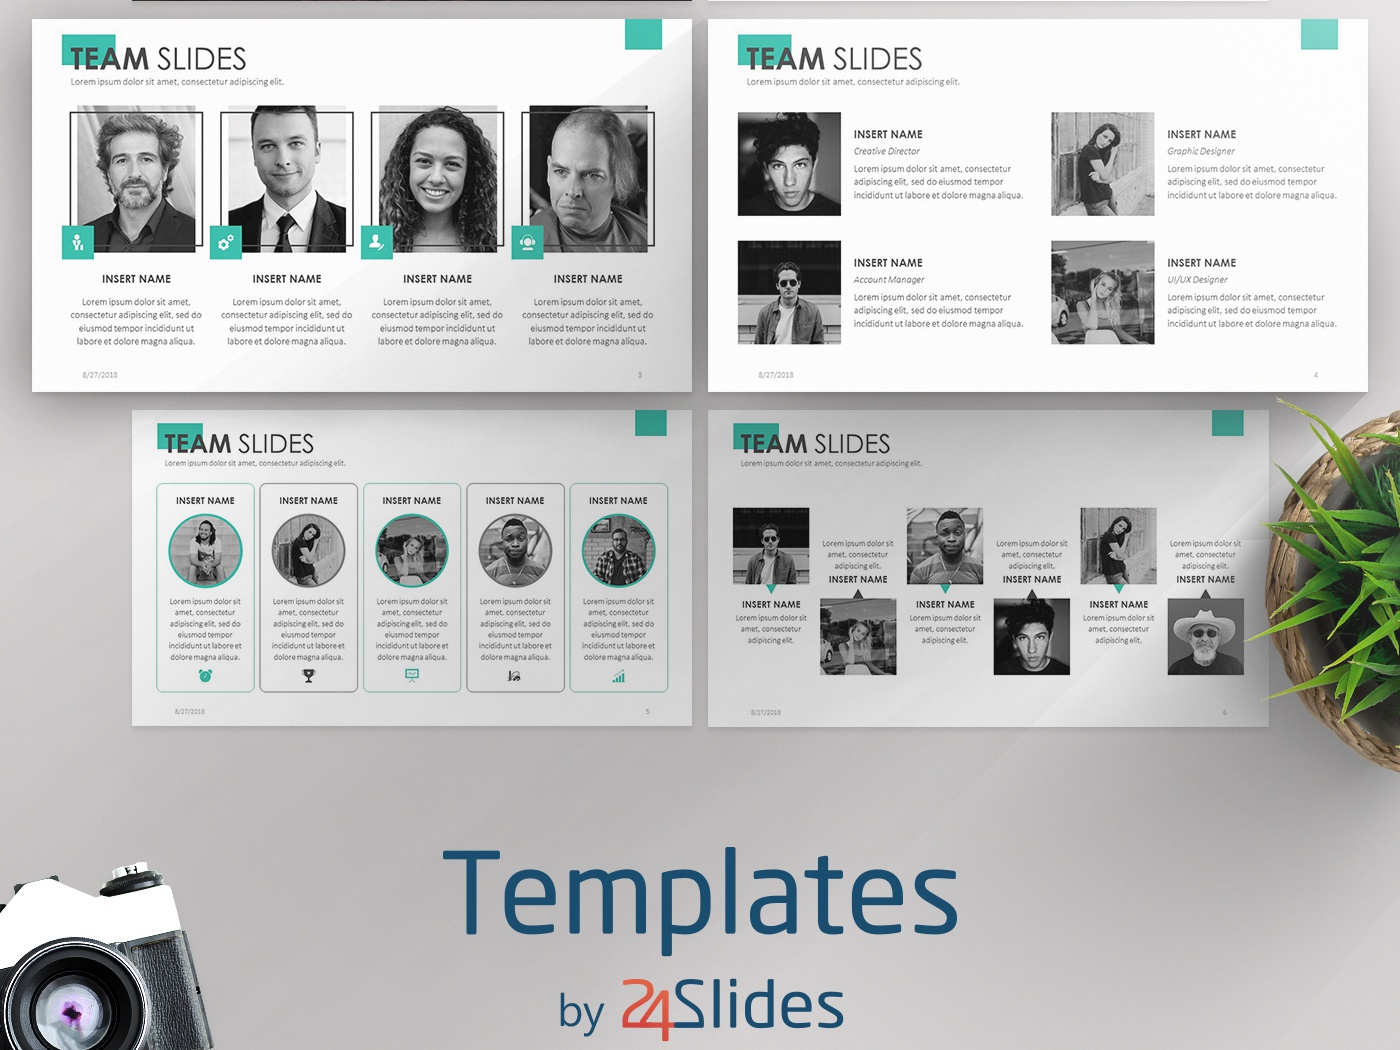 Team Slides Powerpoint Template Free Download By 24slides